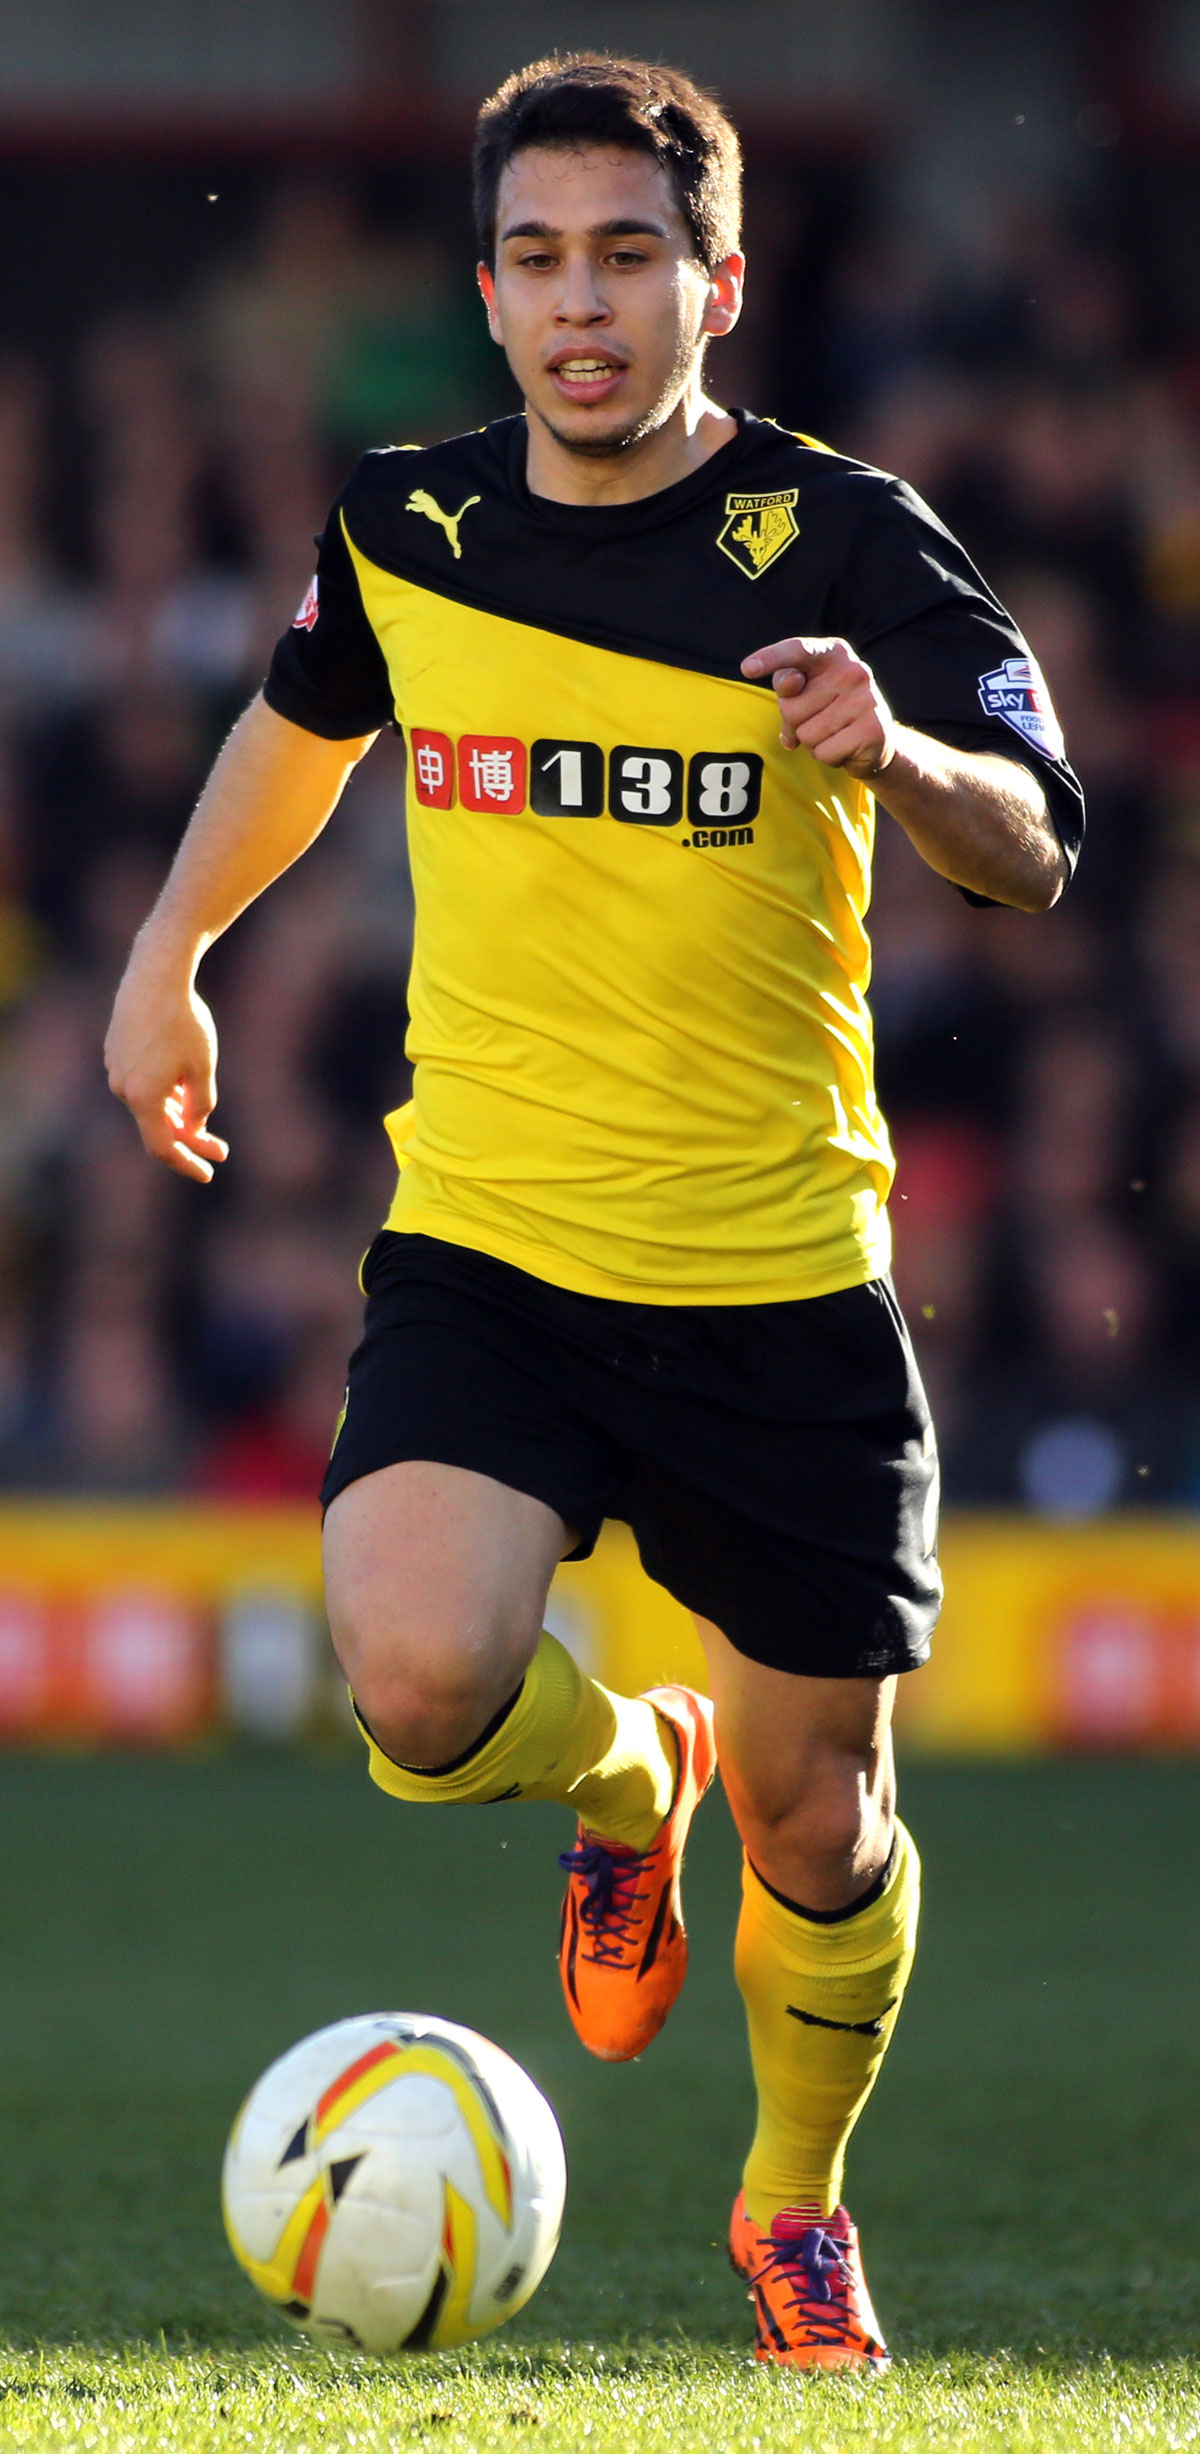 Cristian Battocchio opened Watford's account. Picture: Action Images